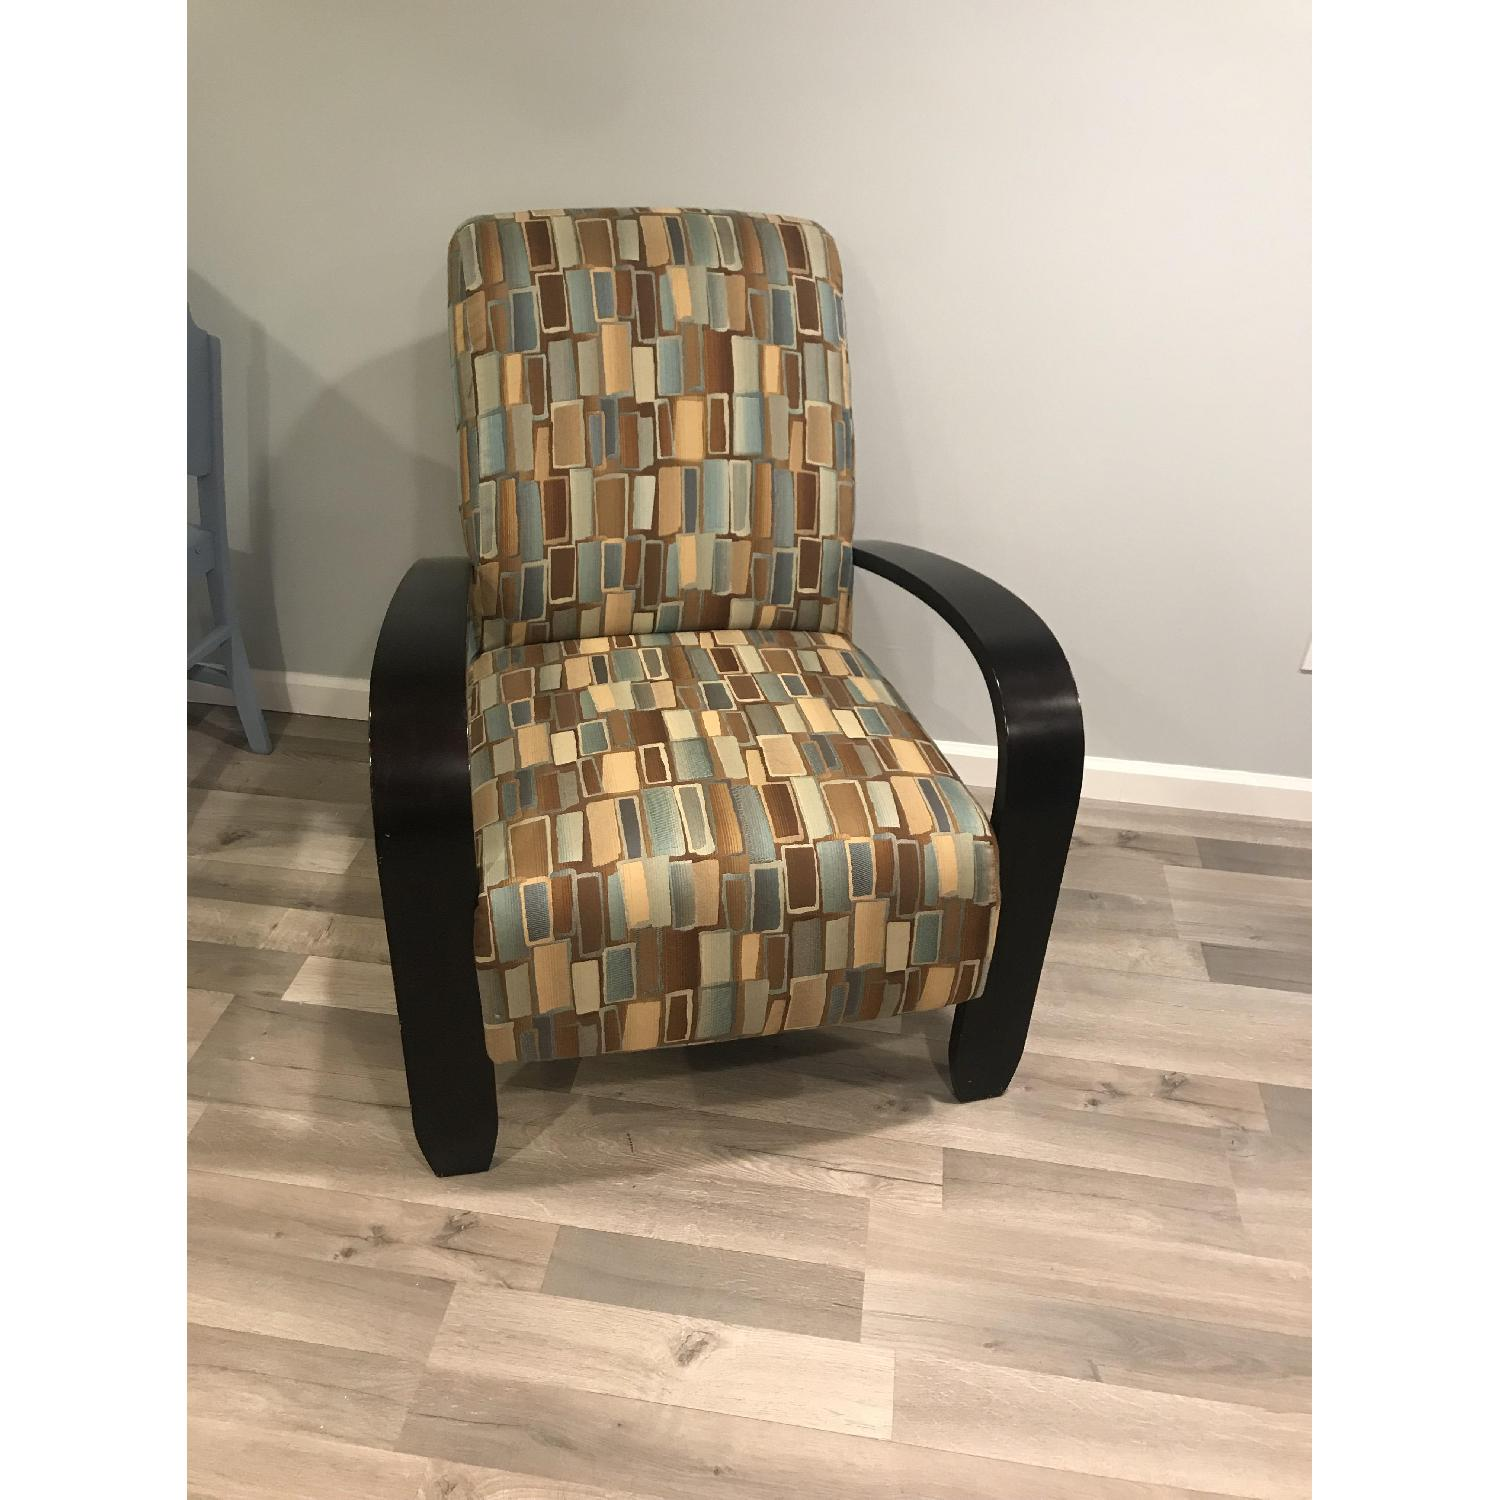 Wood & Fabric Upholstered Chairs - image-1